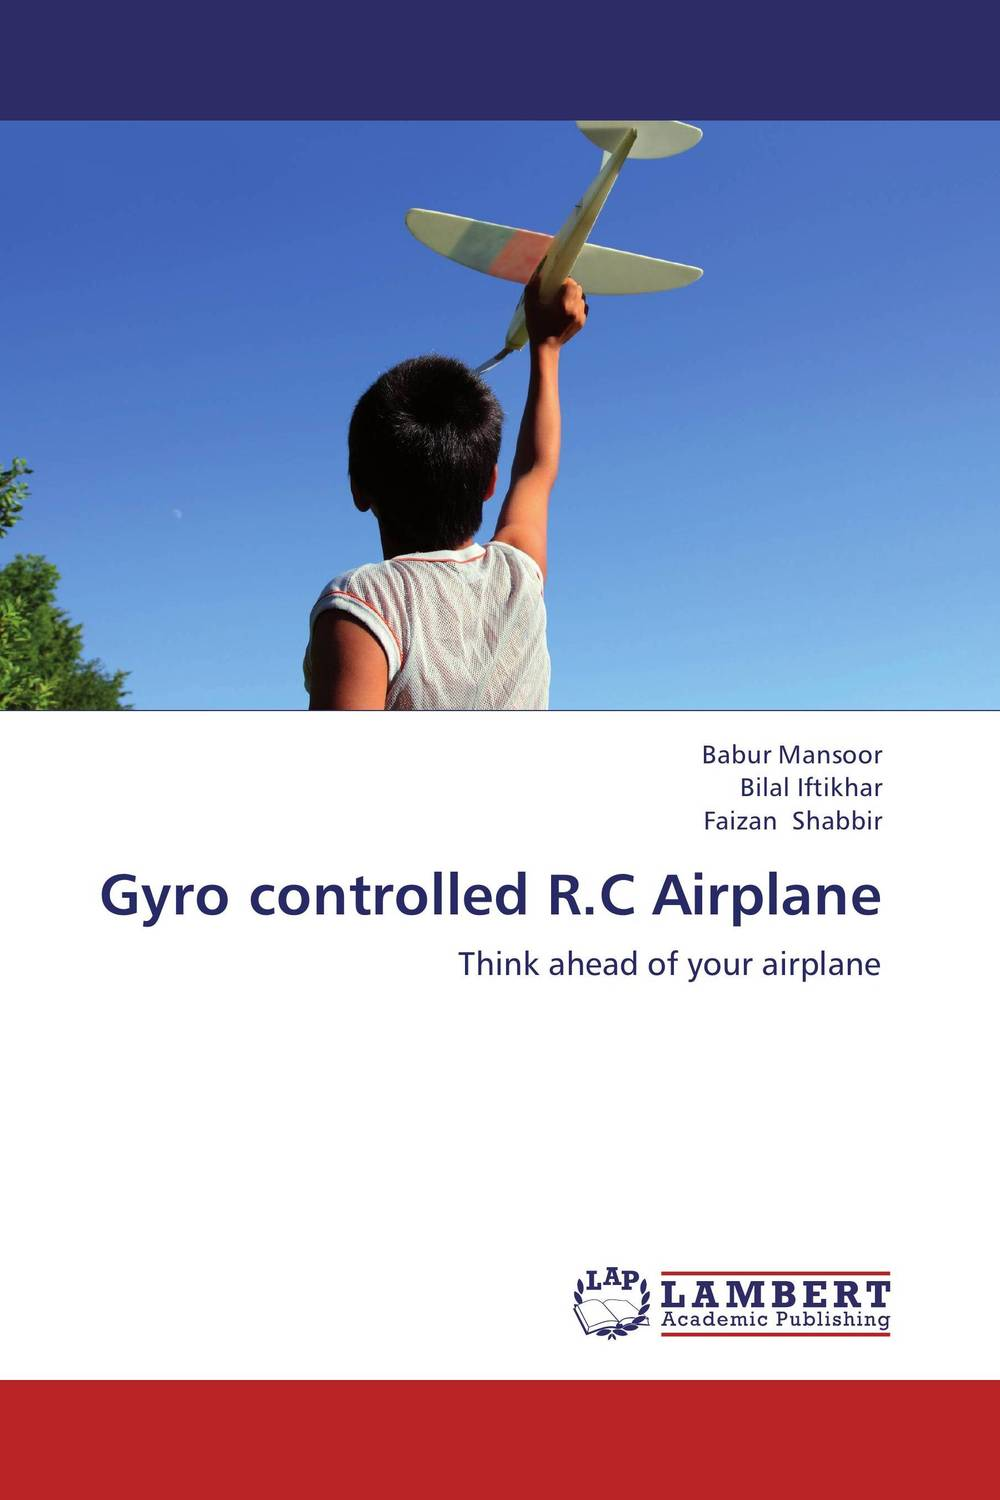 Gyro controlled R.C Airplane microgear radio controlled rc grasshopper flying in the air